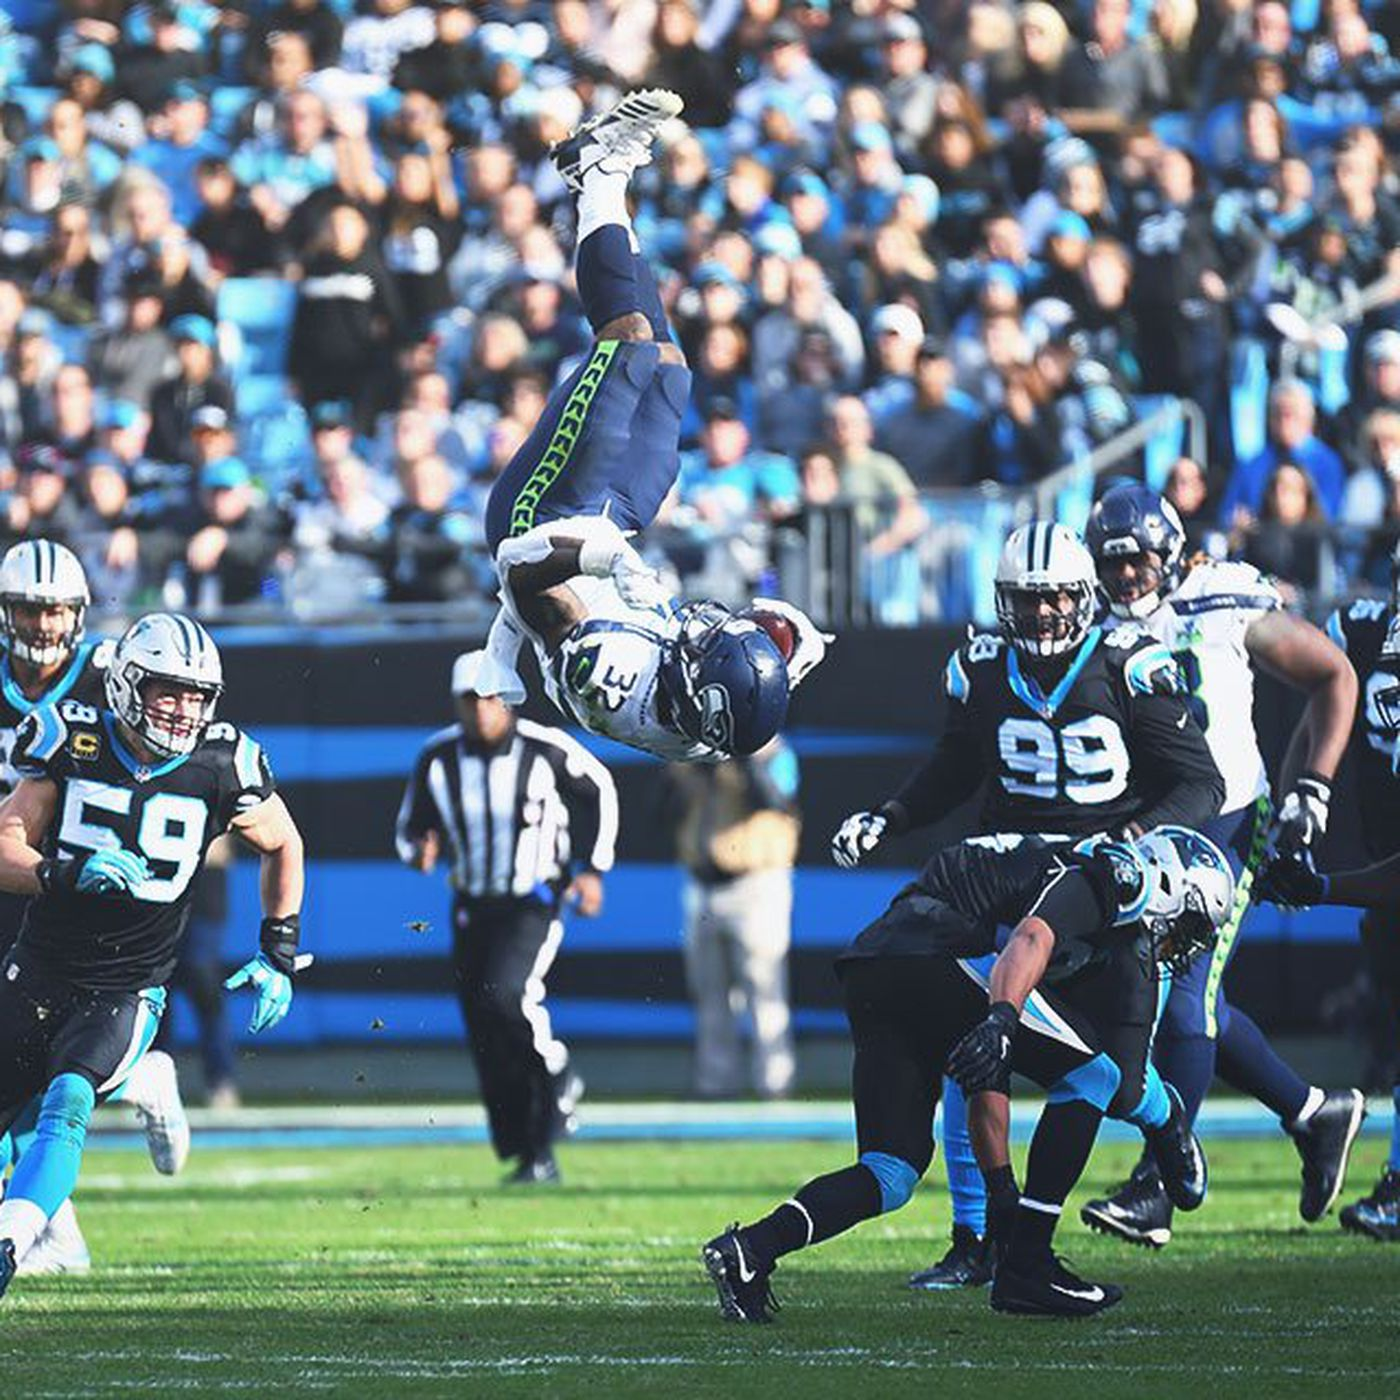 online store 2e149 63a68 Scoring Chris Carson's ludicrous flip over the Panthers ...